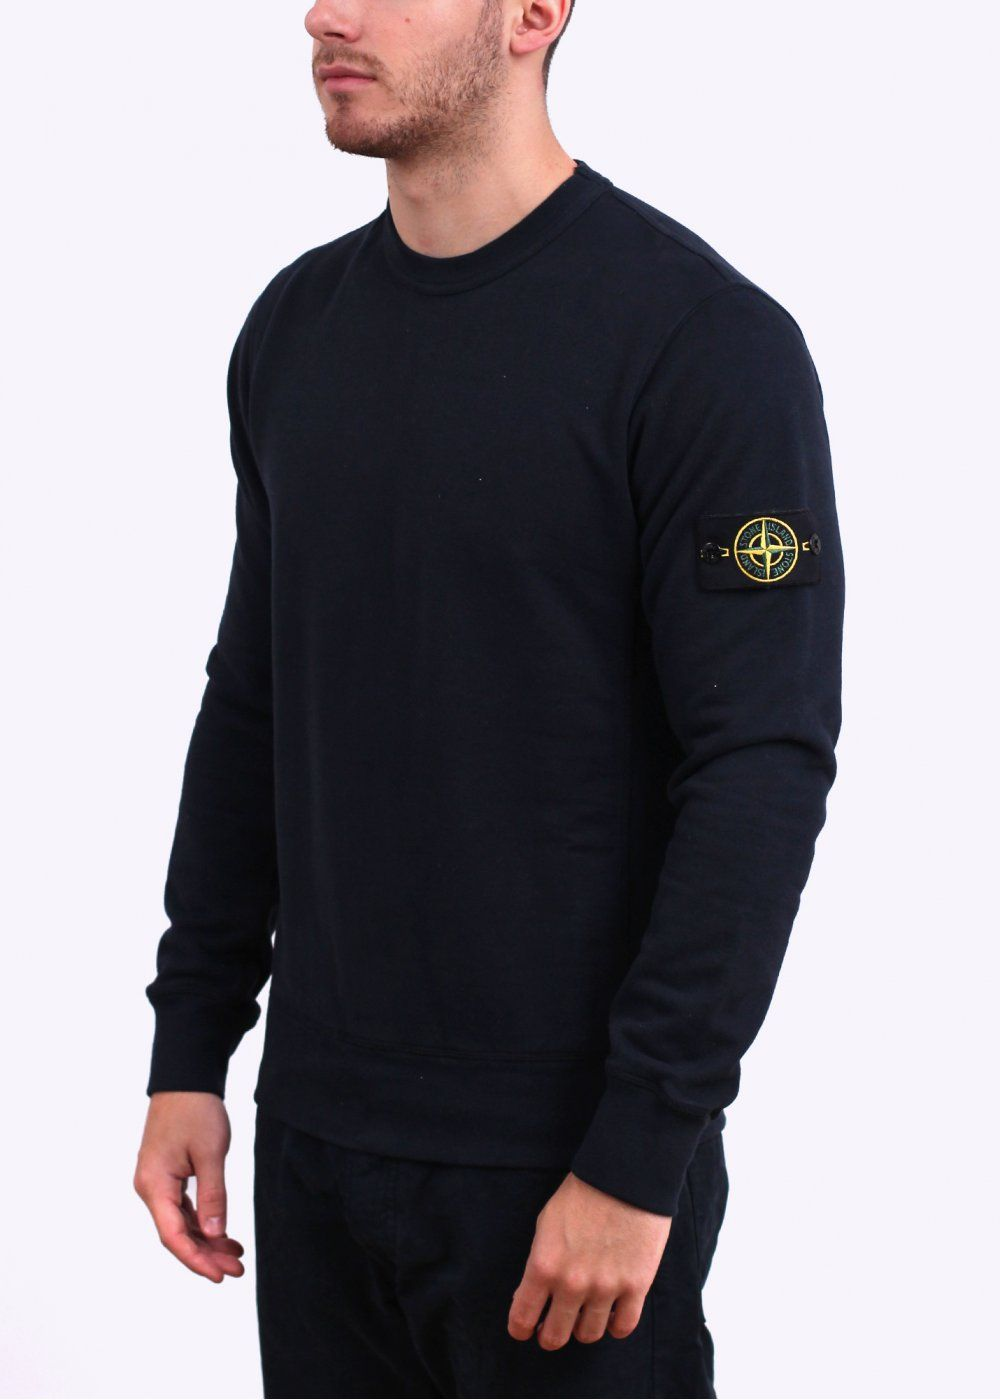 e8390a4a Stone Island Crew Sweater - Navy | Fashion Ideas. in 2019 | Stone ...